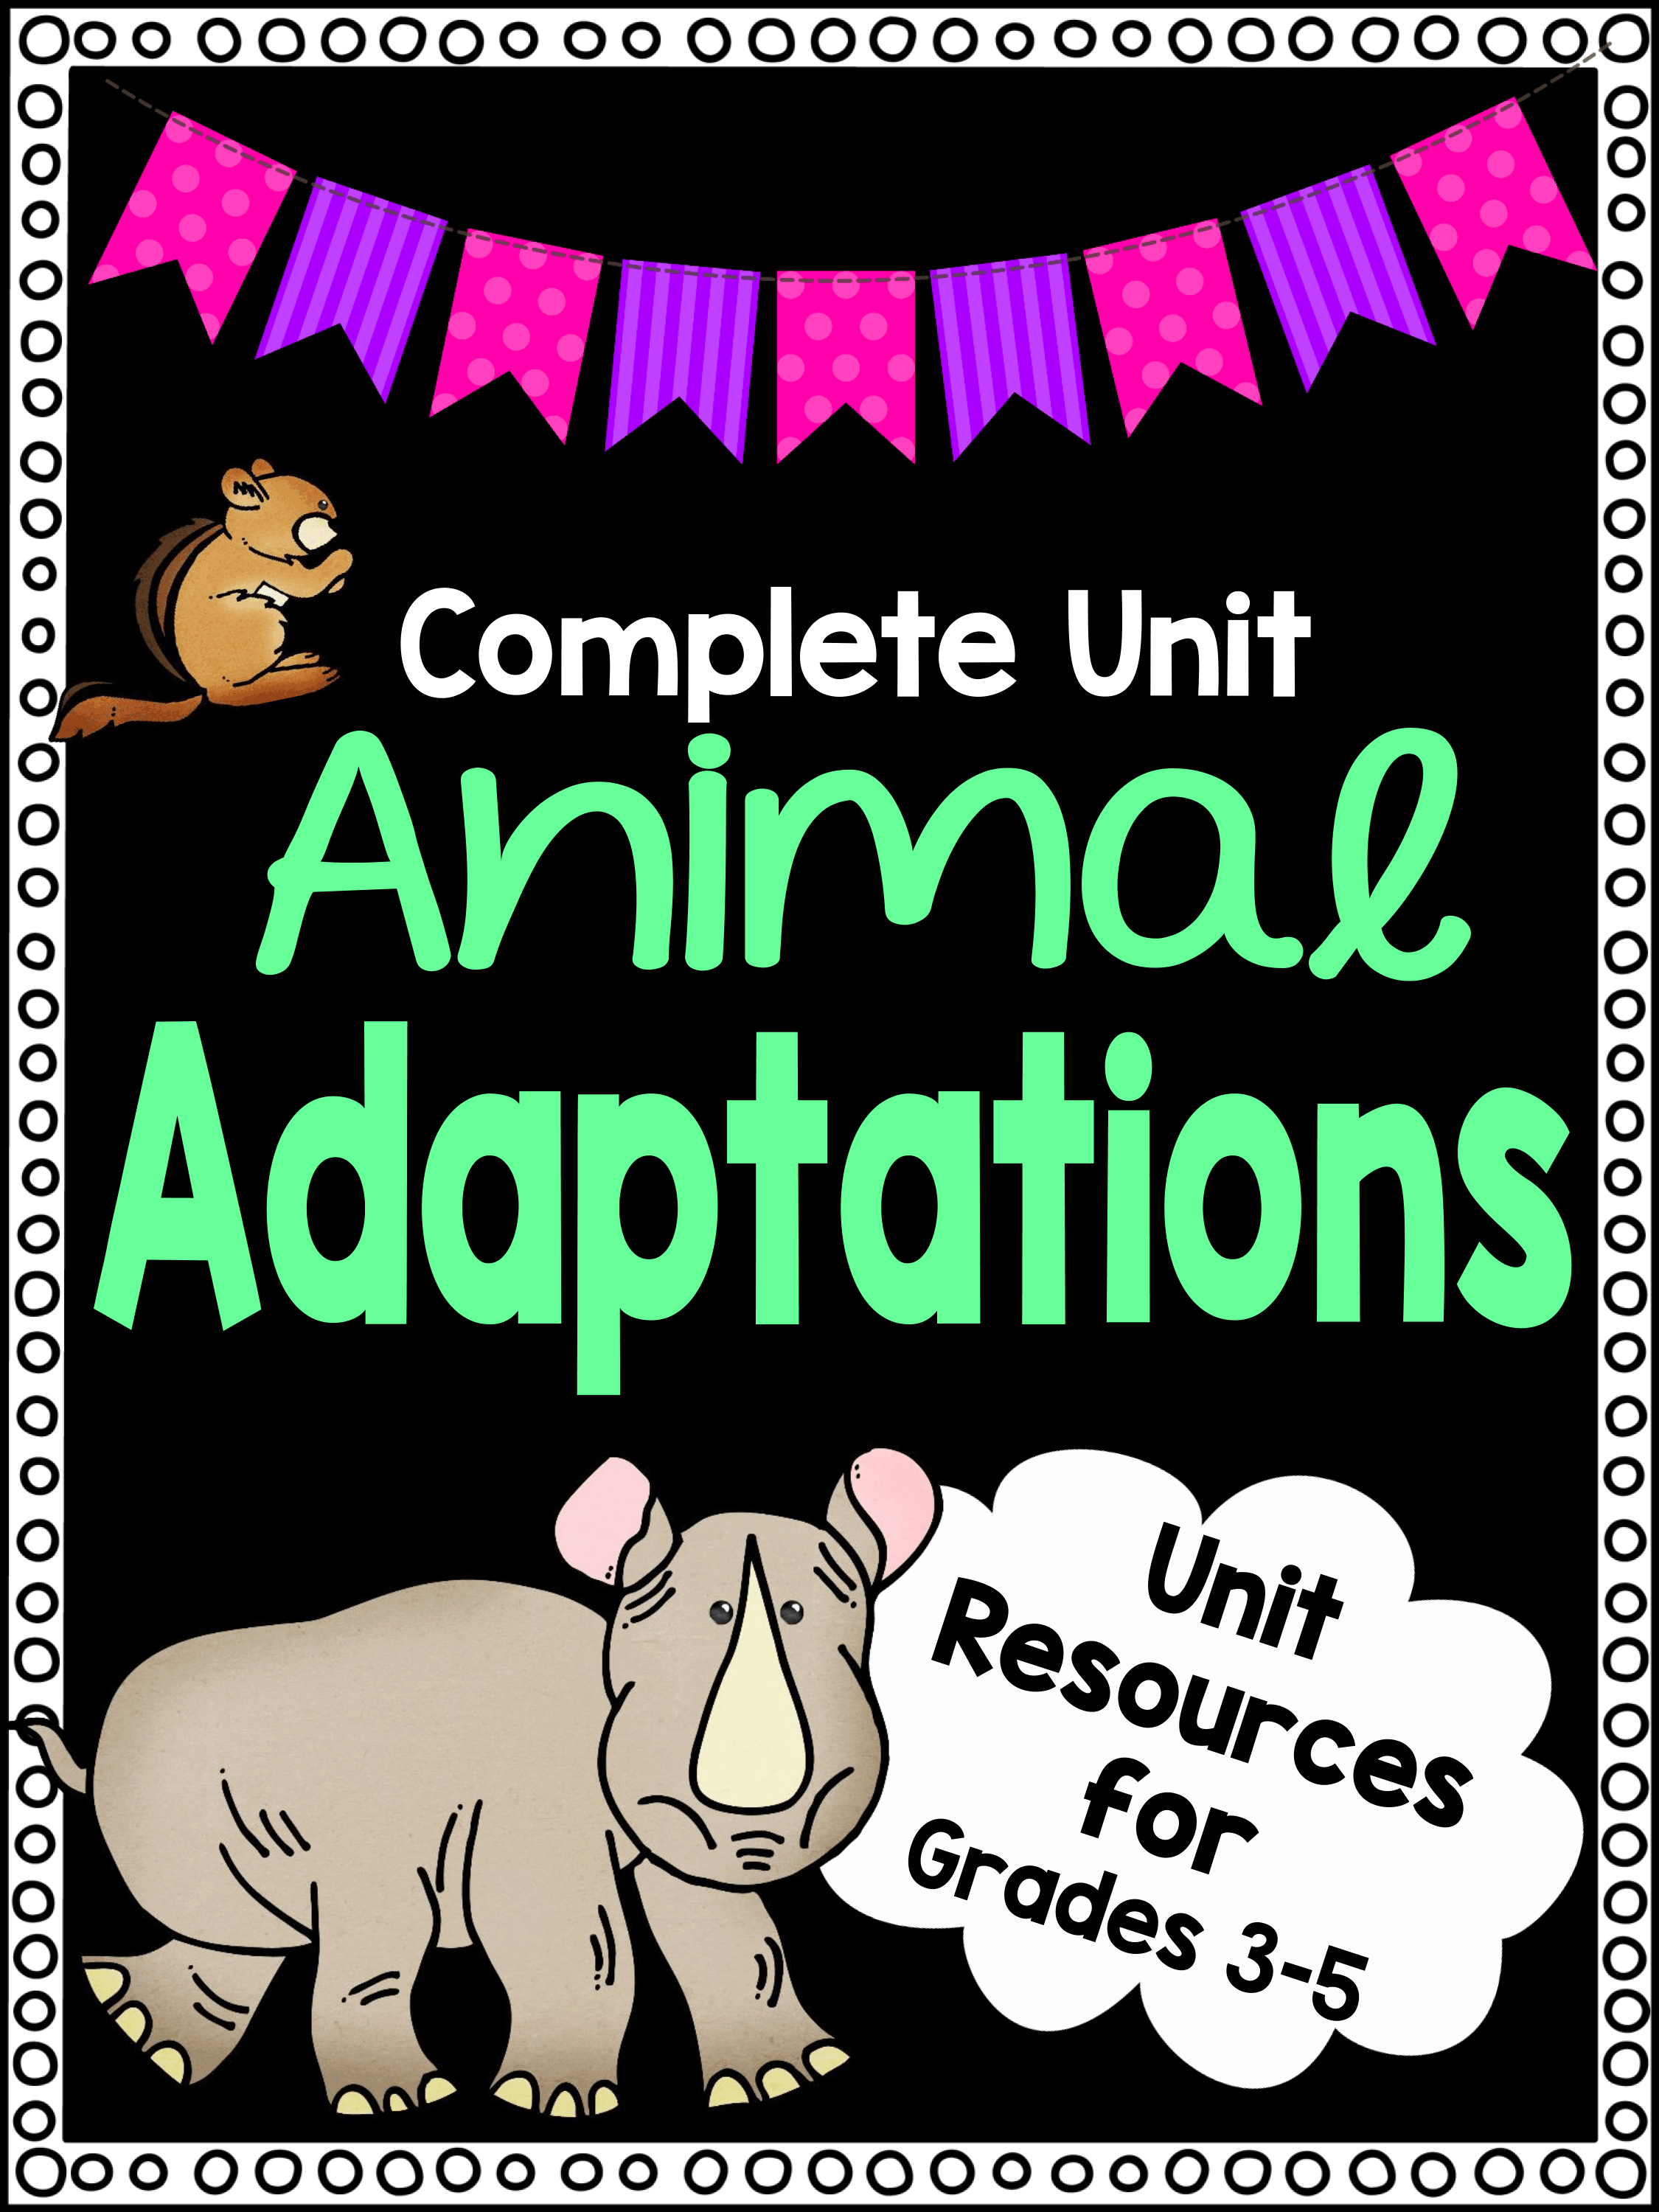 Worksheets Animal Adaptations Worksheets animal adaptations worksheet unit plan for teachers download the worksheets